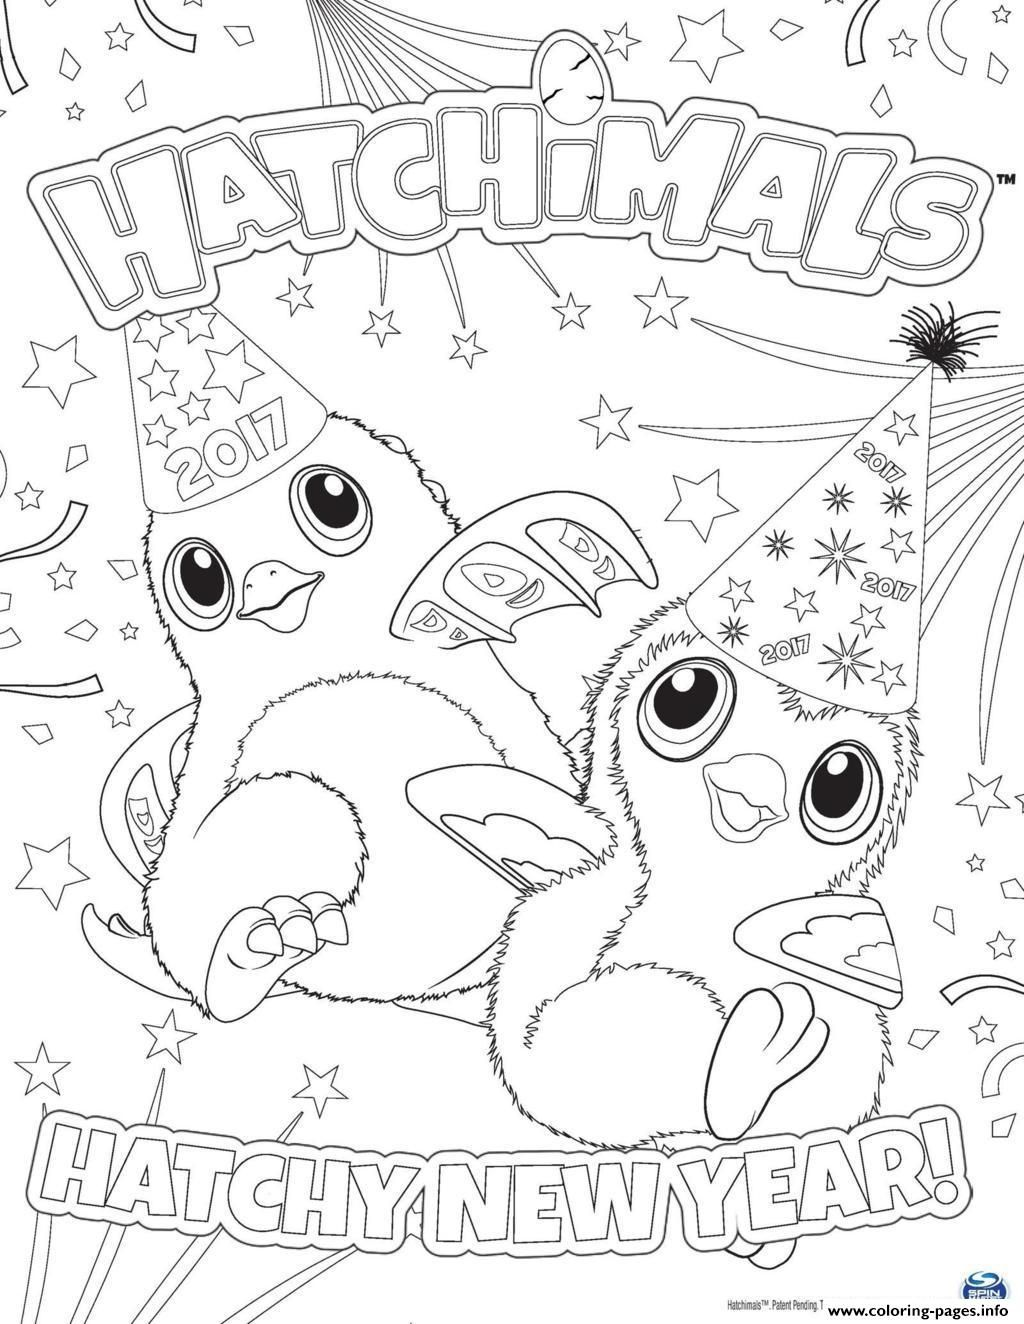 Hatchimals Review Check Out Before You Buy New Year Coloring